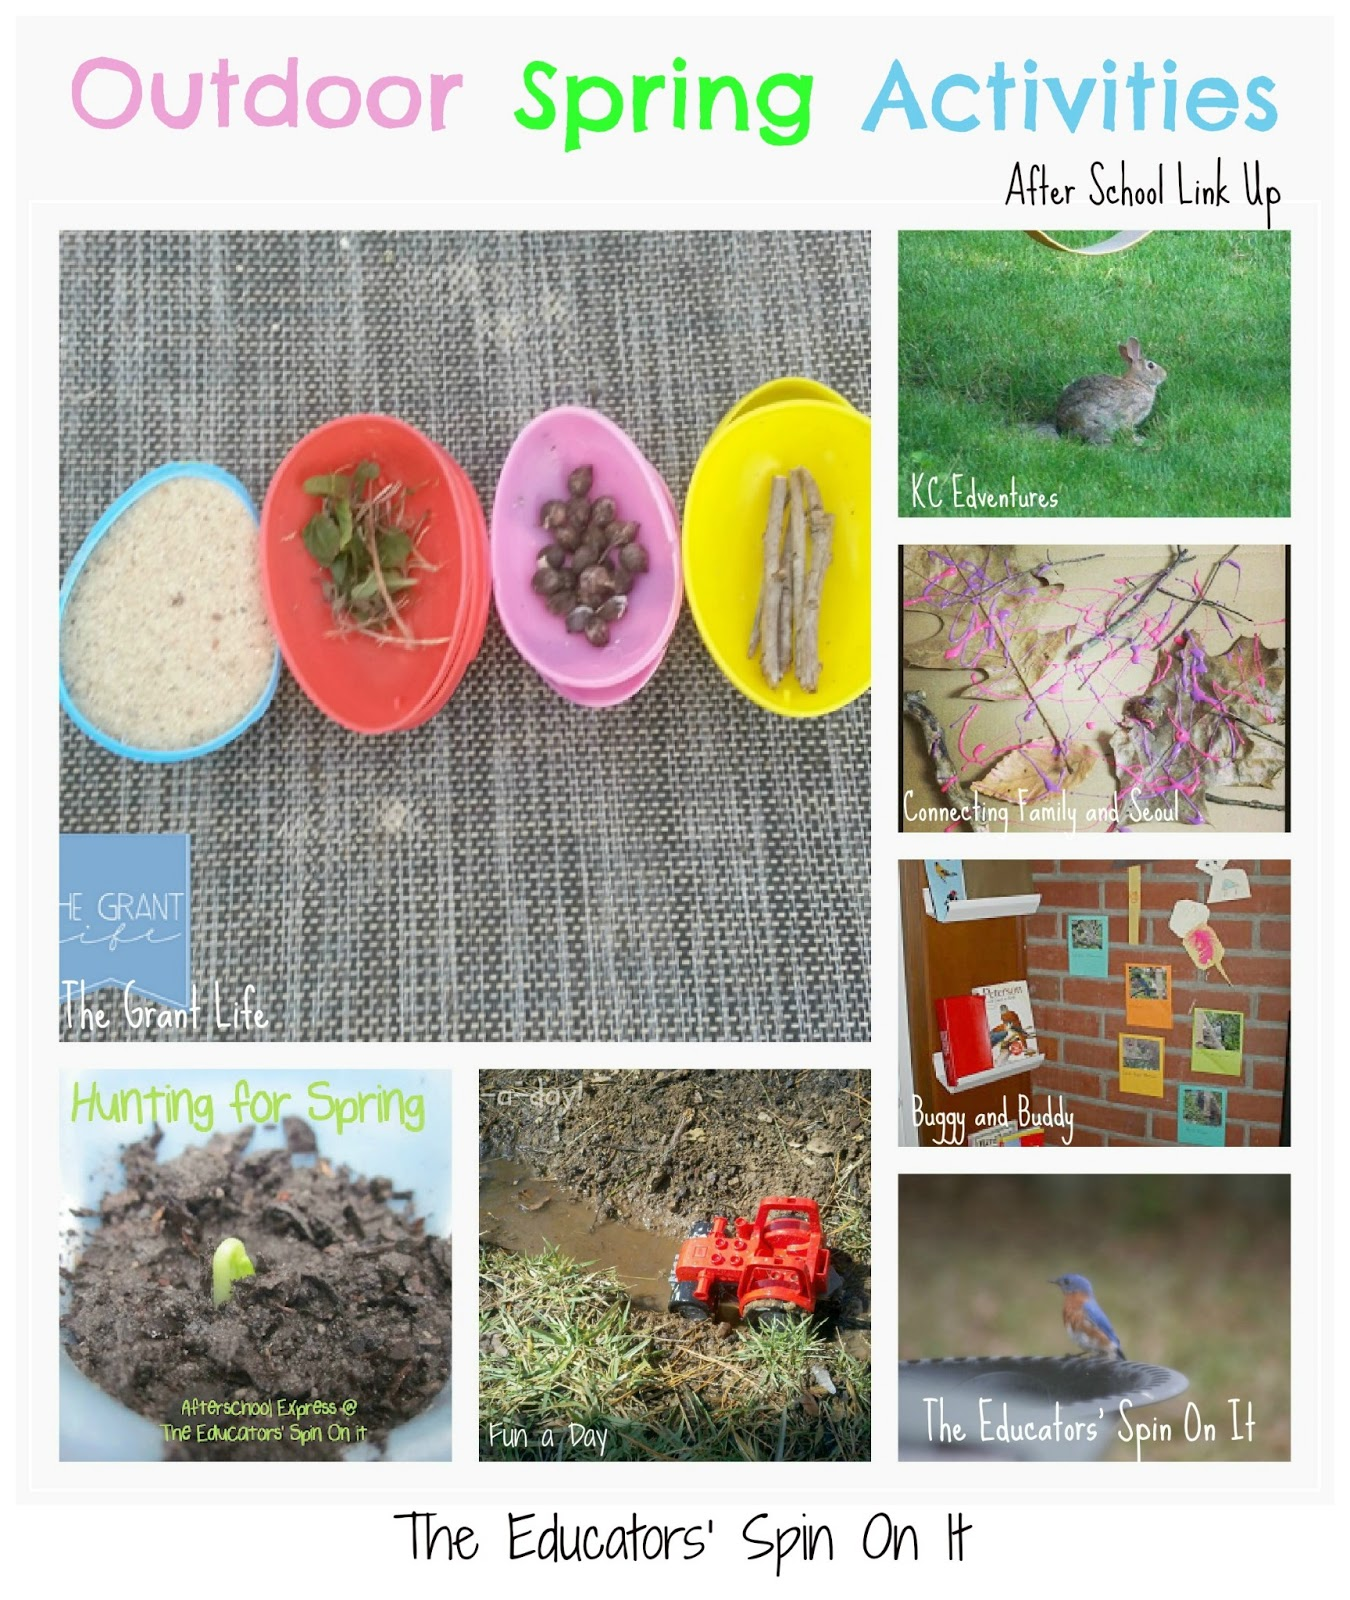 Featured 5 Spring Projects: The Educators' Spin On It: Outdoor Spring Activities